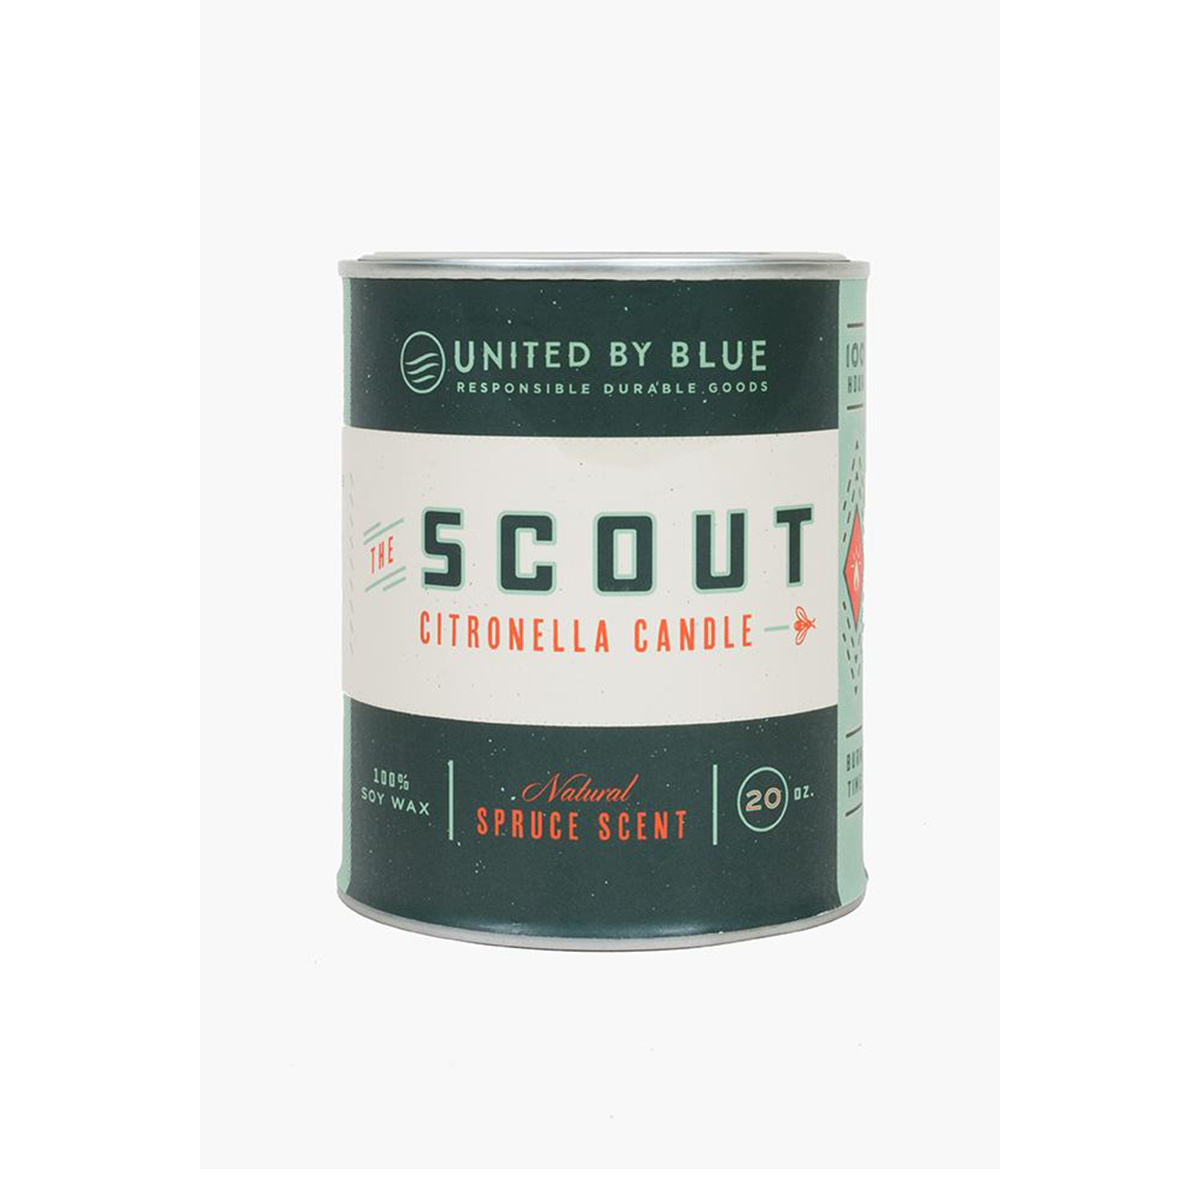 United by Blue Scout Citronella Candle